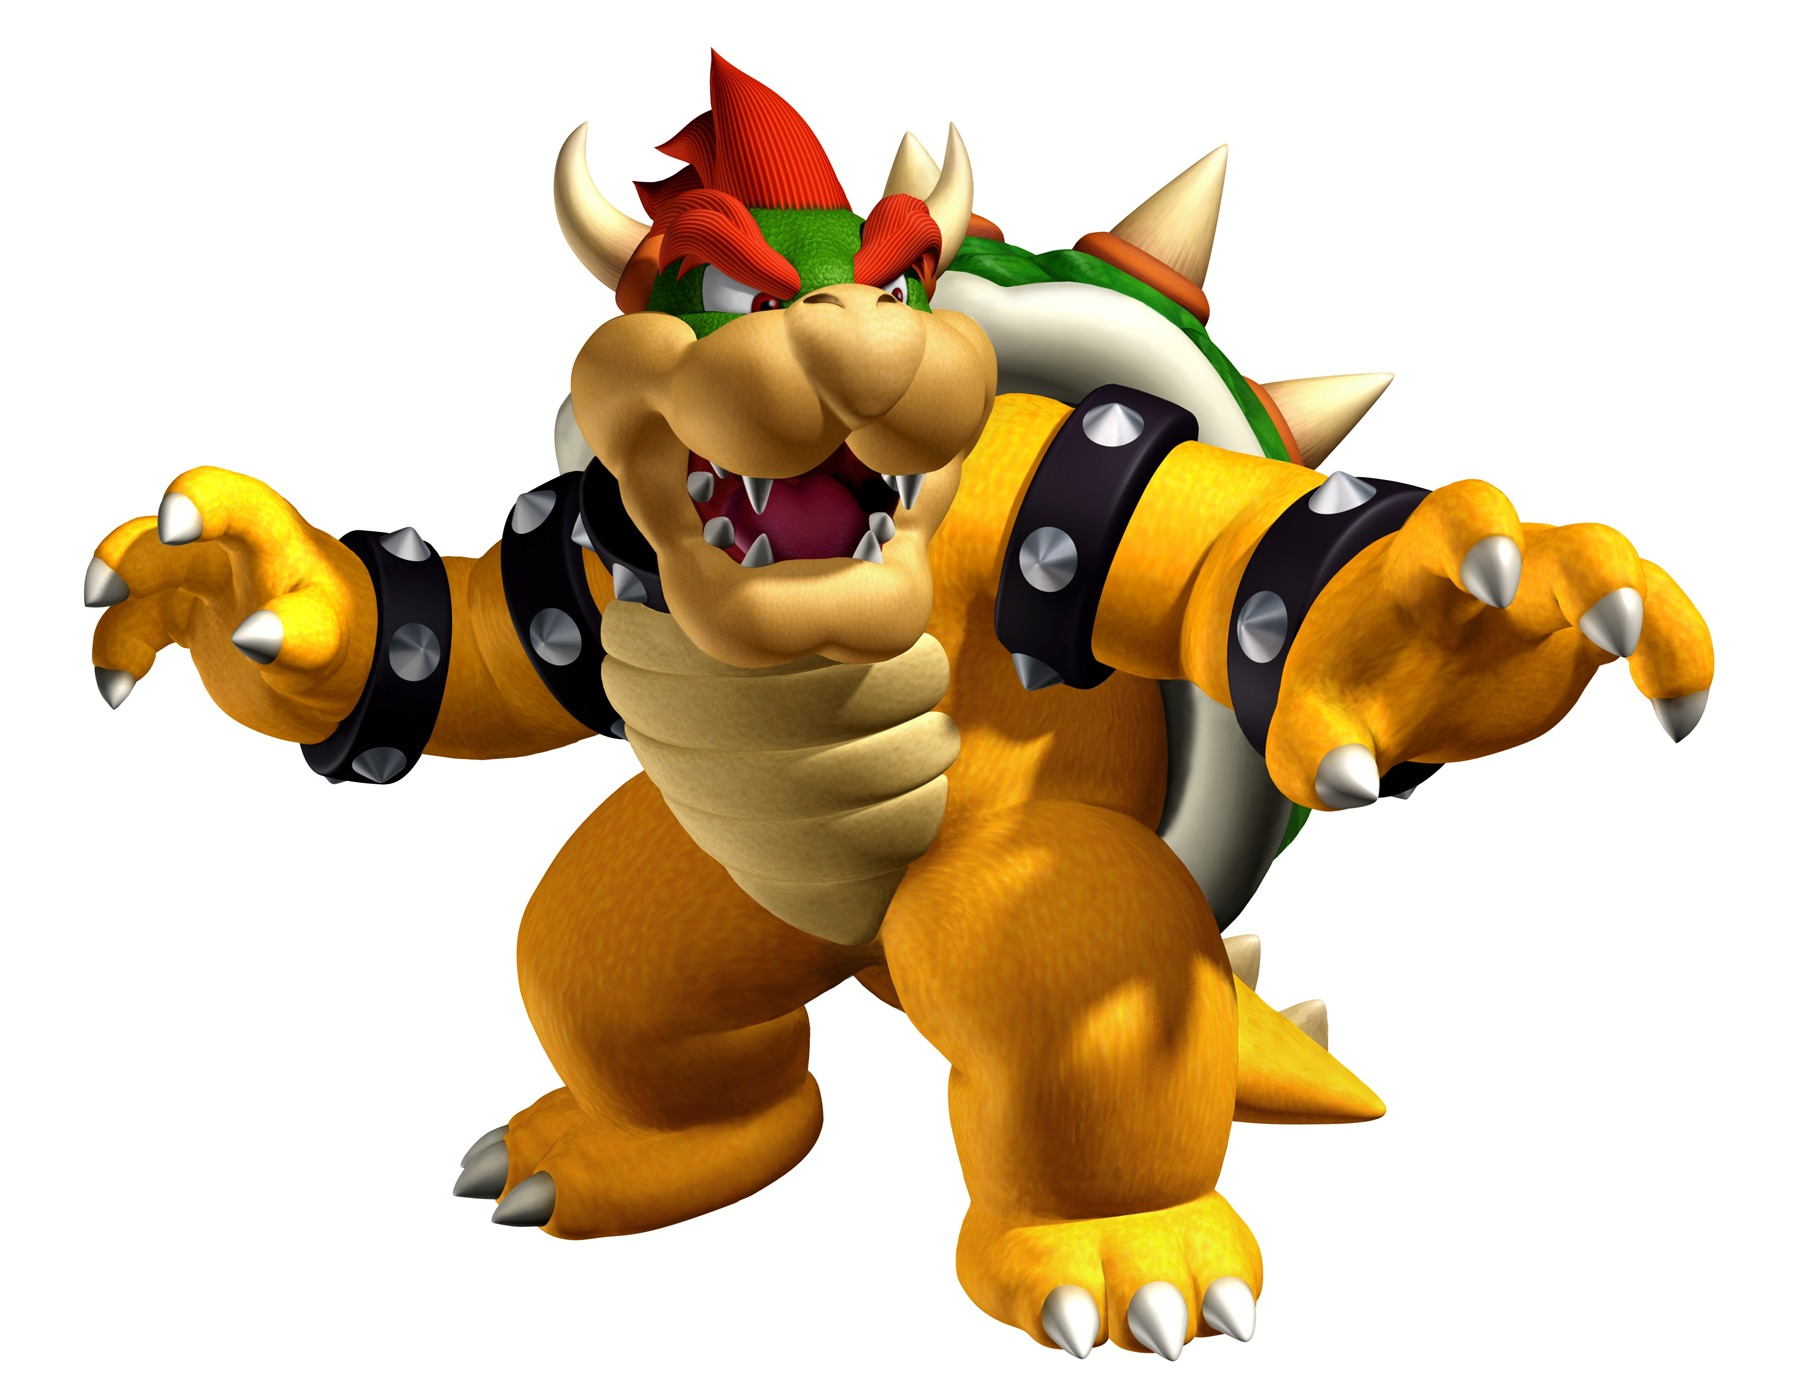 Bowser's personal life shrouded in mystery - Infendo ...